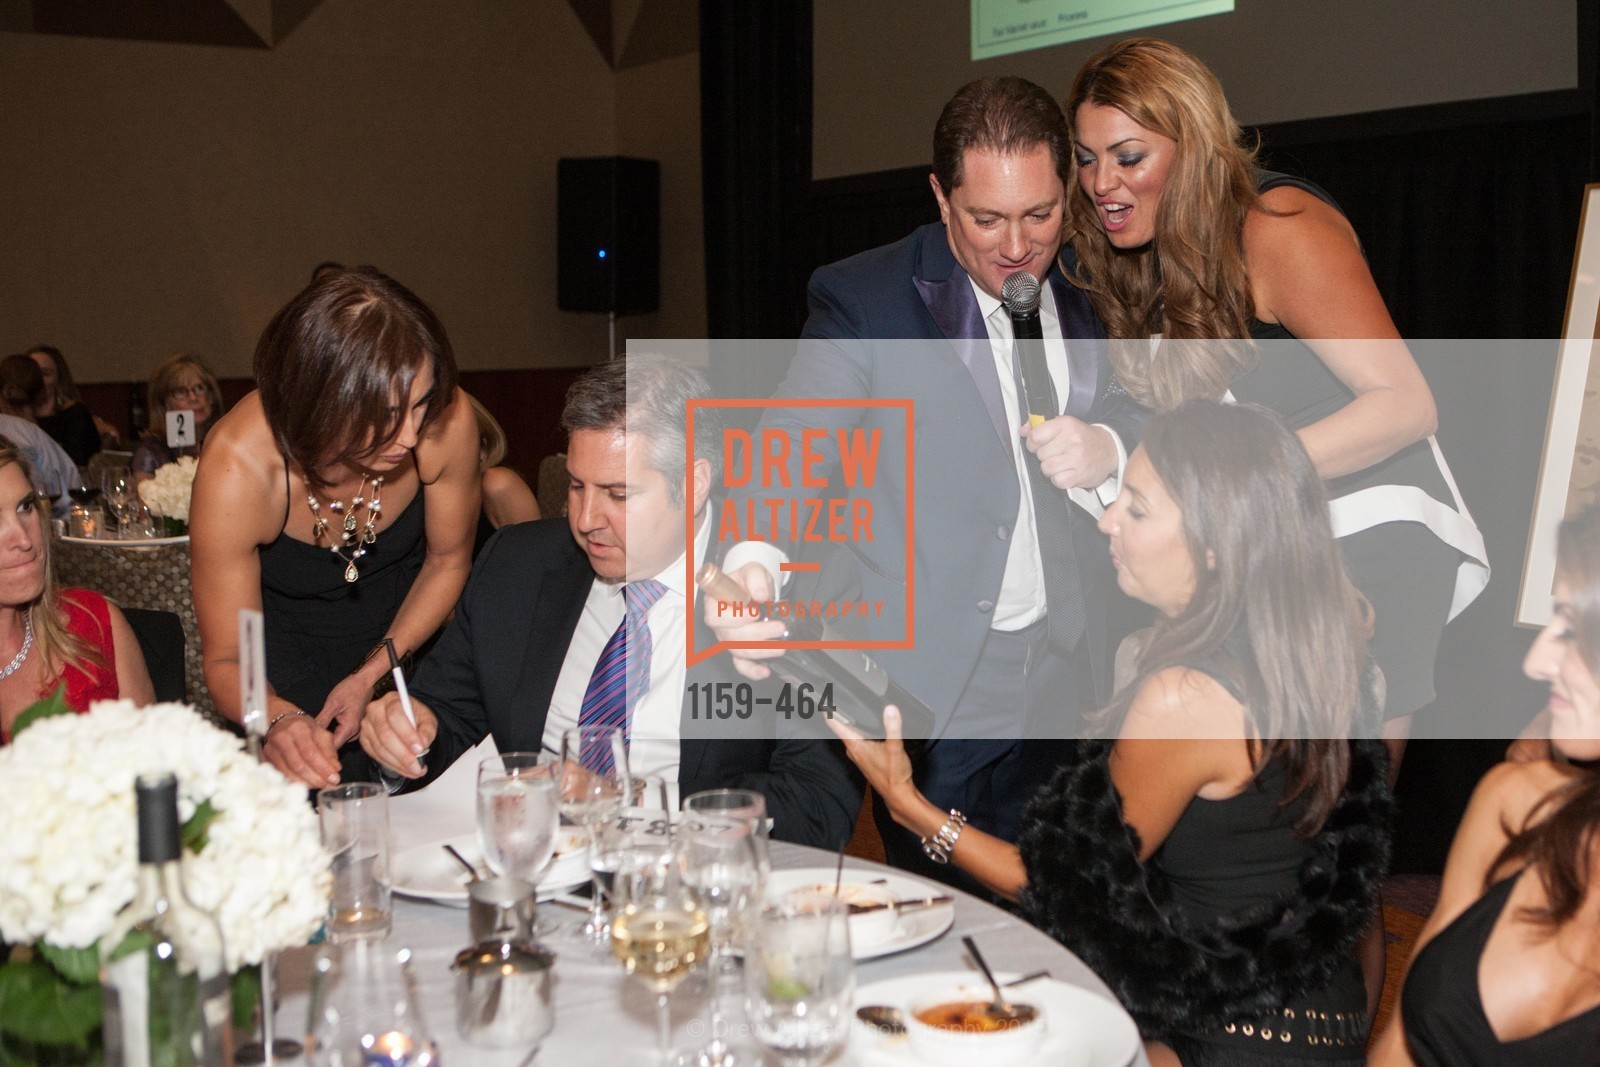 Liam Mayclem, Claudia Karkia, Operation Smile Presents THE SAN FRANCISCO 2015 SMILE GALA, InterContinental Hotel, November 7th, 2015,Drew Altizer, Drew Altizer Photography, full-service agency, private events, San Francisco photographer, photographer california